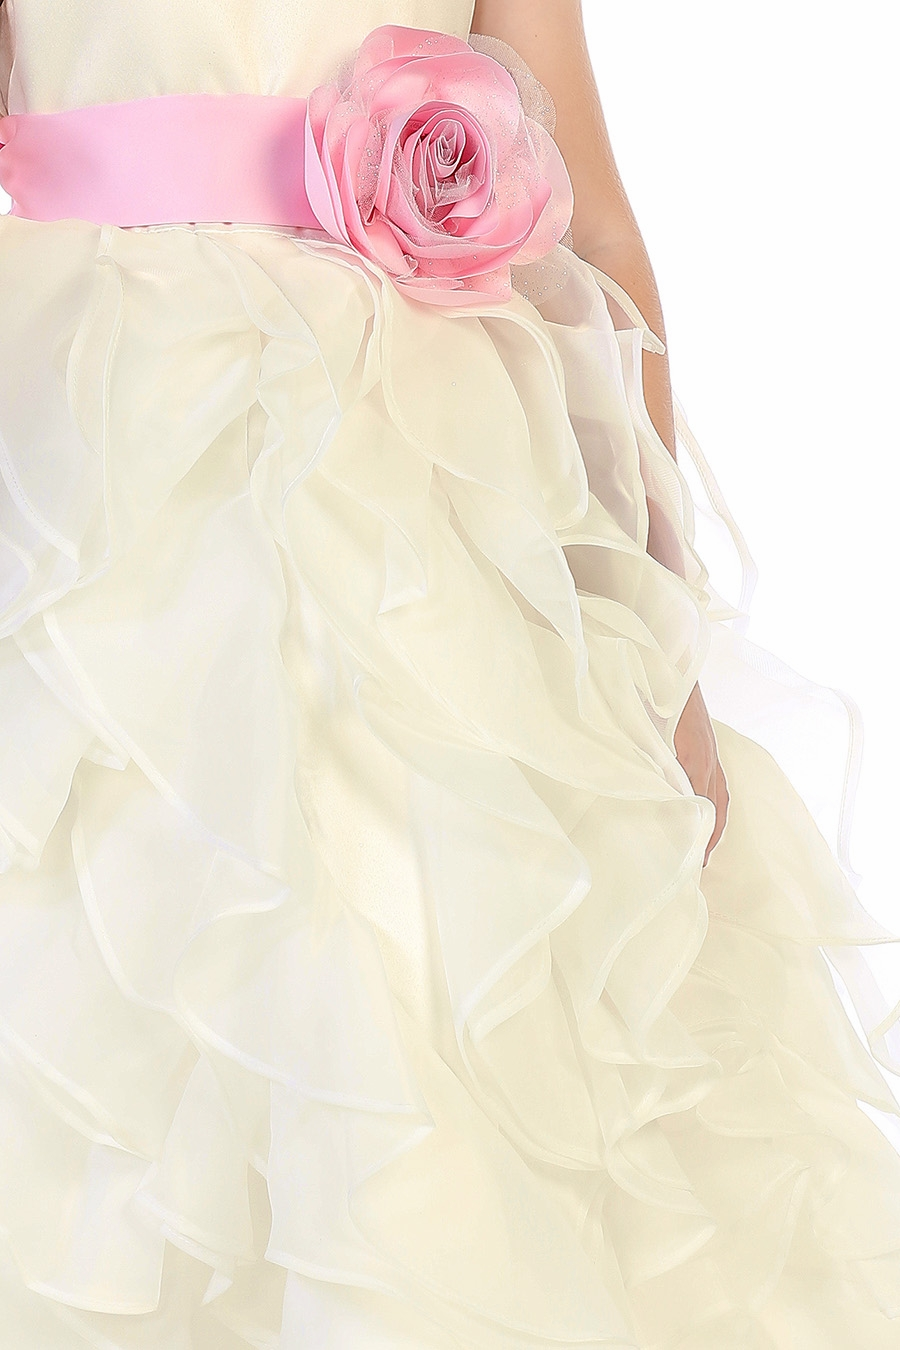 c3b8f55eb08 ... Click to Enlarge Click to Enlarge Click to Enlarge. Blossom BL305 Ivory Layered  Flower Girl Dress w  Satin Flower Sash